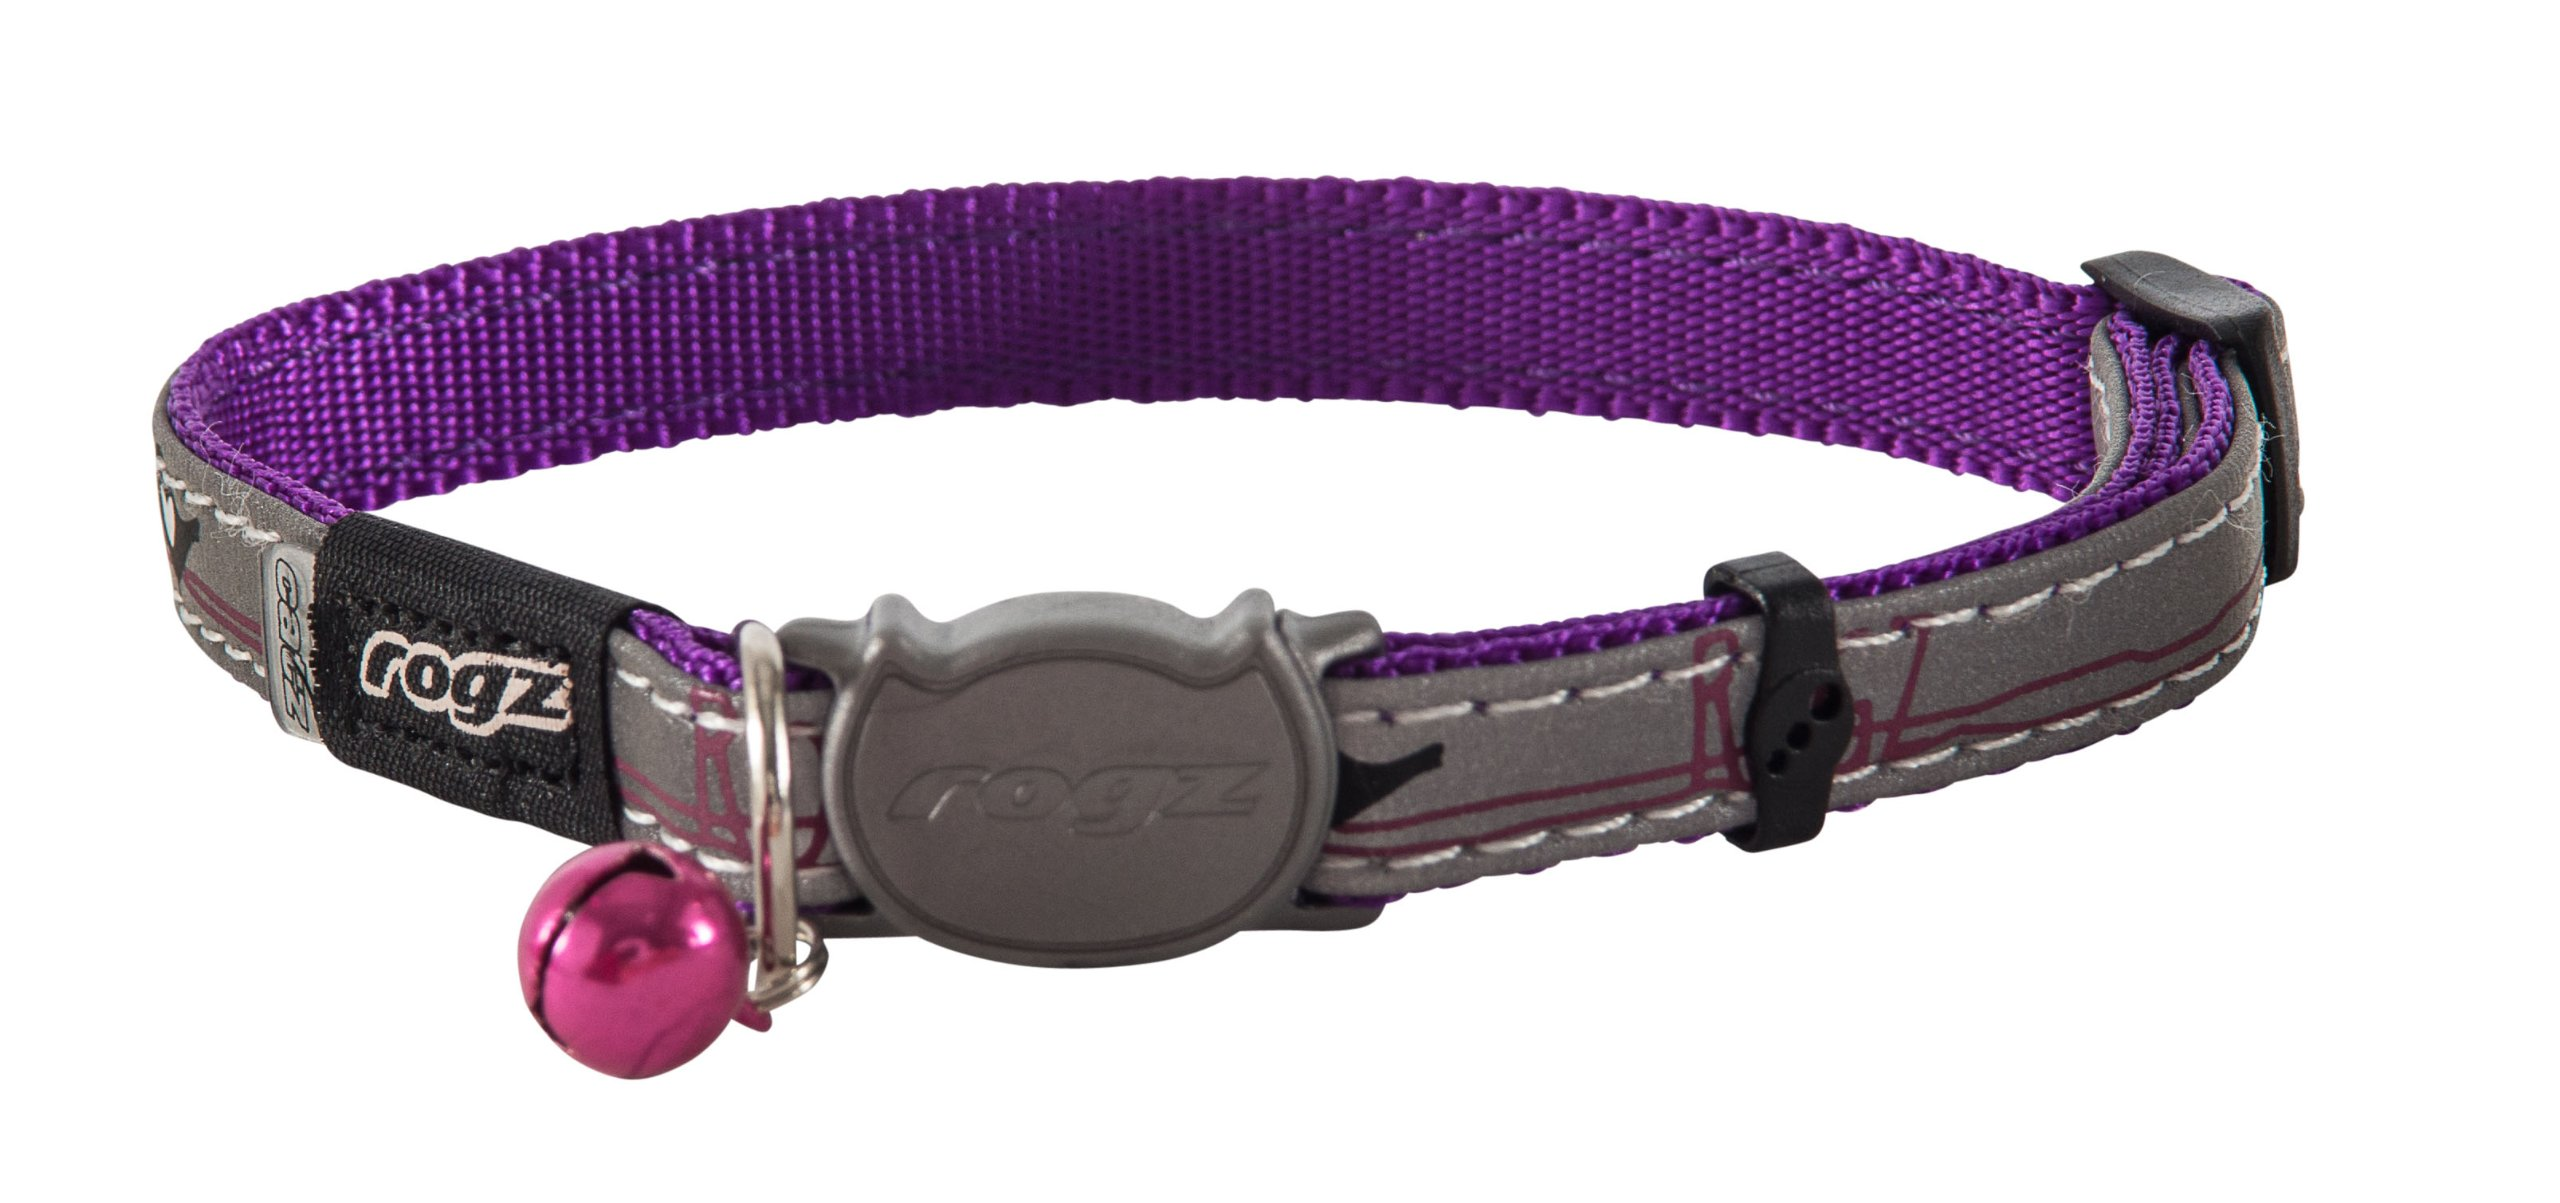 ROGZ Reflective Cat Collar with Breakaway Clip and Removable Bell, Fully Adjustable to fit Most Breeds, Purple Bird Design